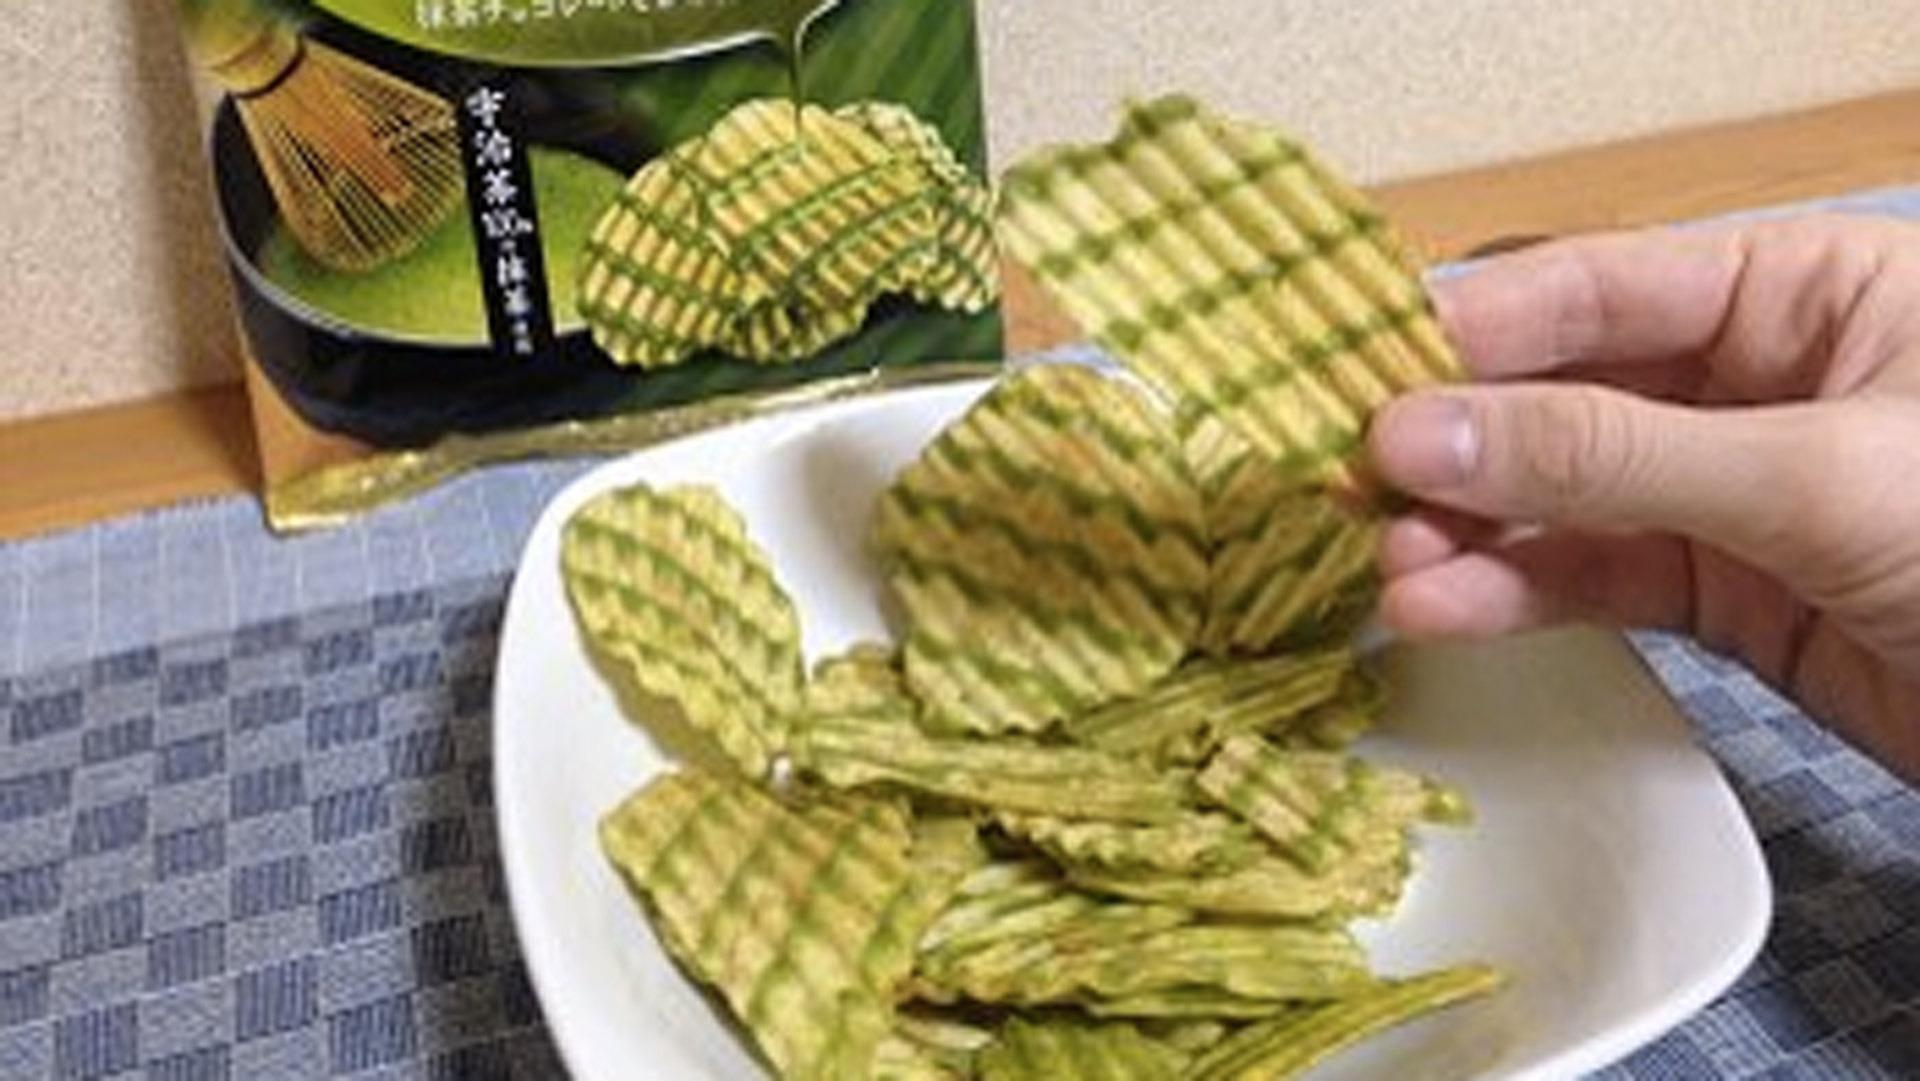 Matcha flavored chocolate-covered potato chips are a thing in Japan now